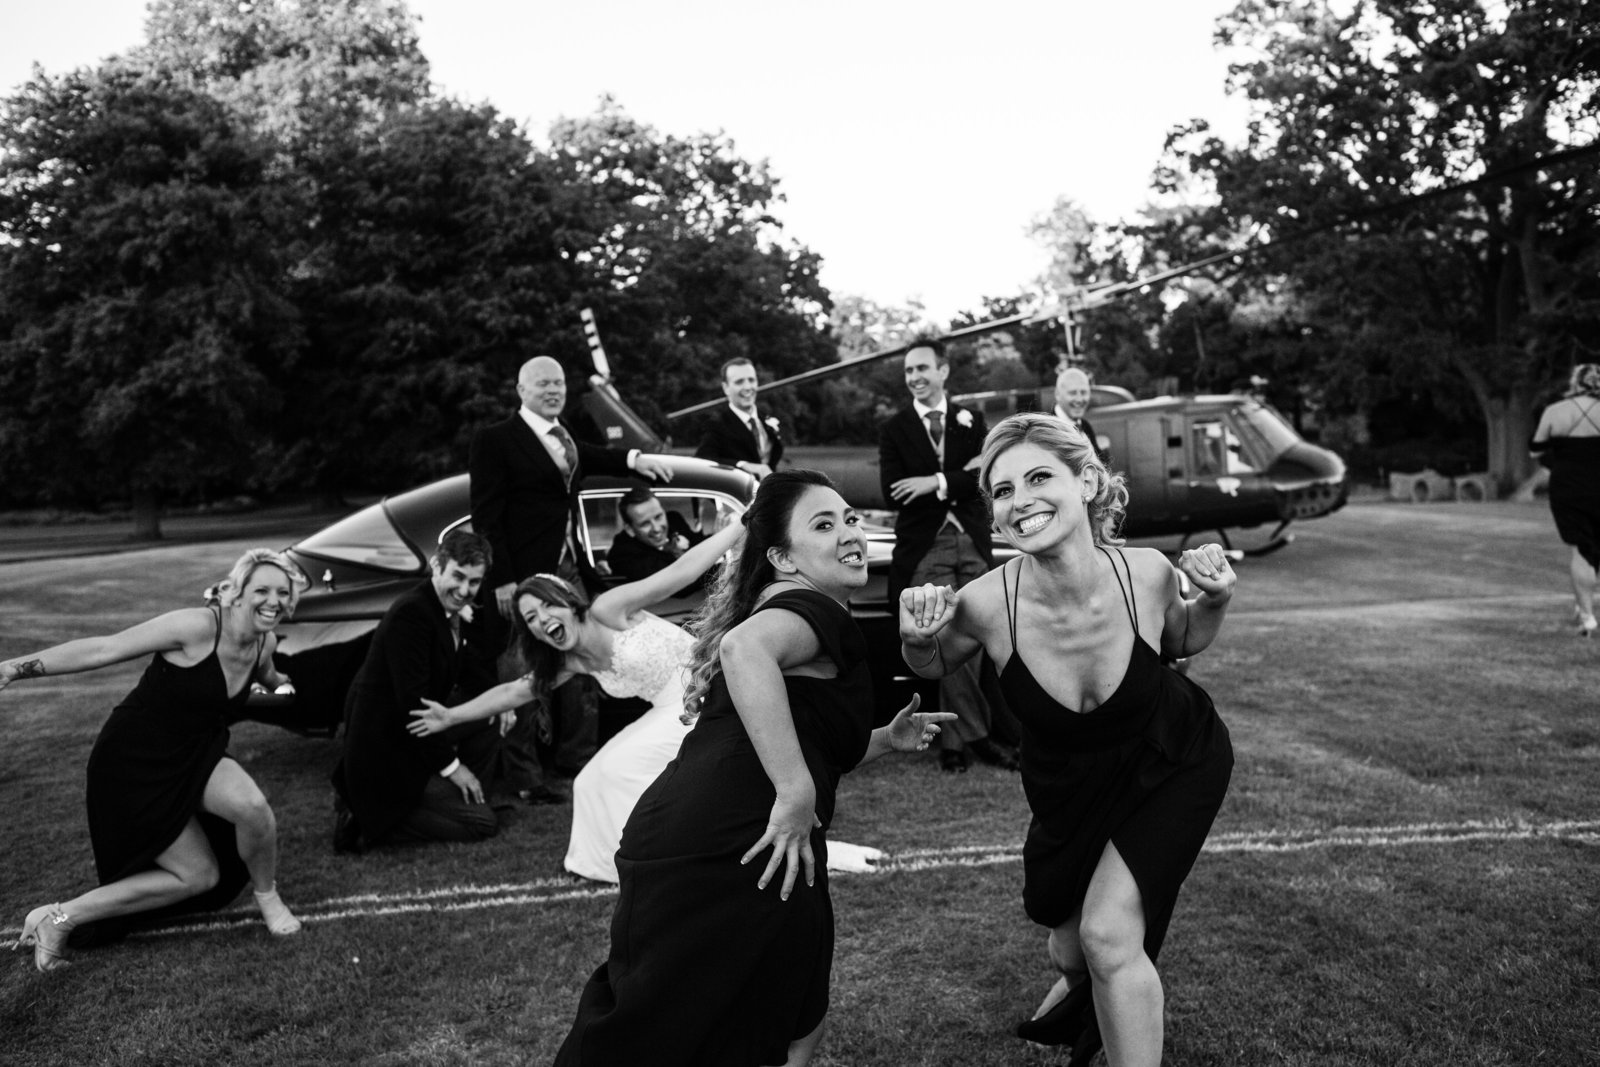 Formal wedding photography is disrupted by Bridesmaids who laugh and pose funnily in front of Groomsmen in Norfolk.